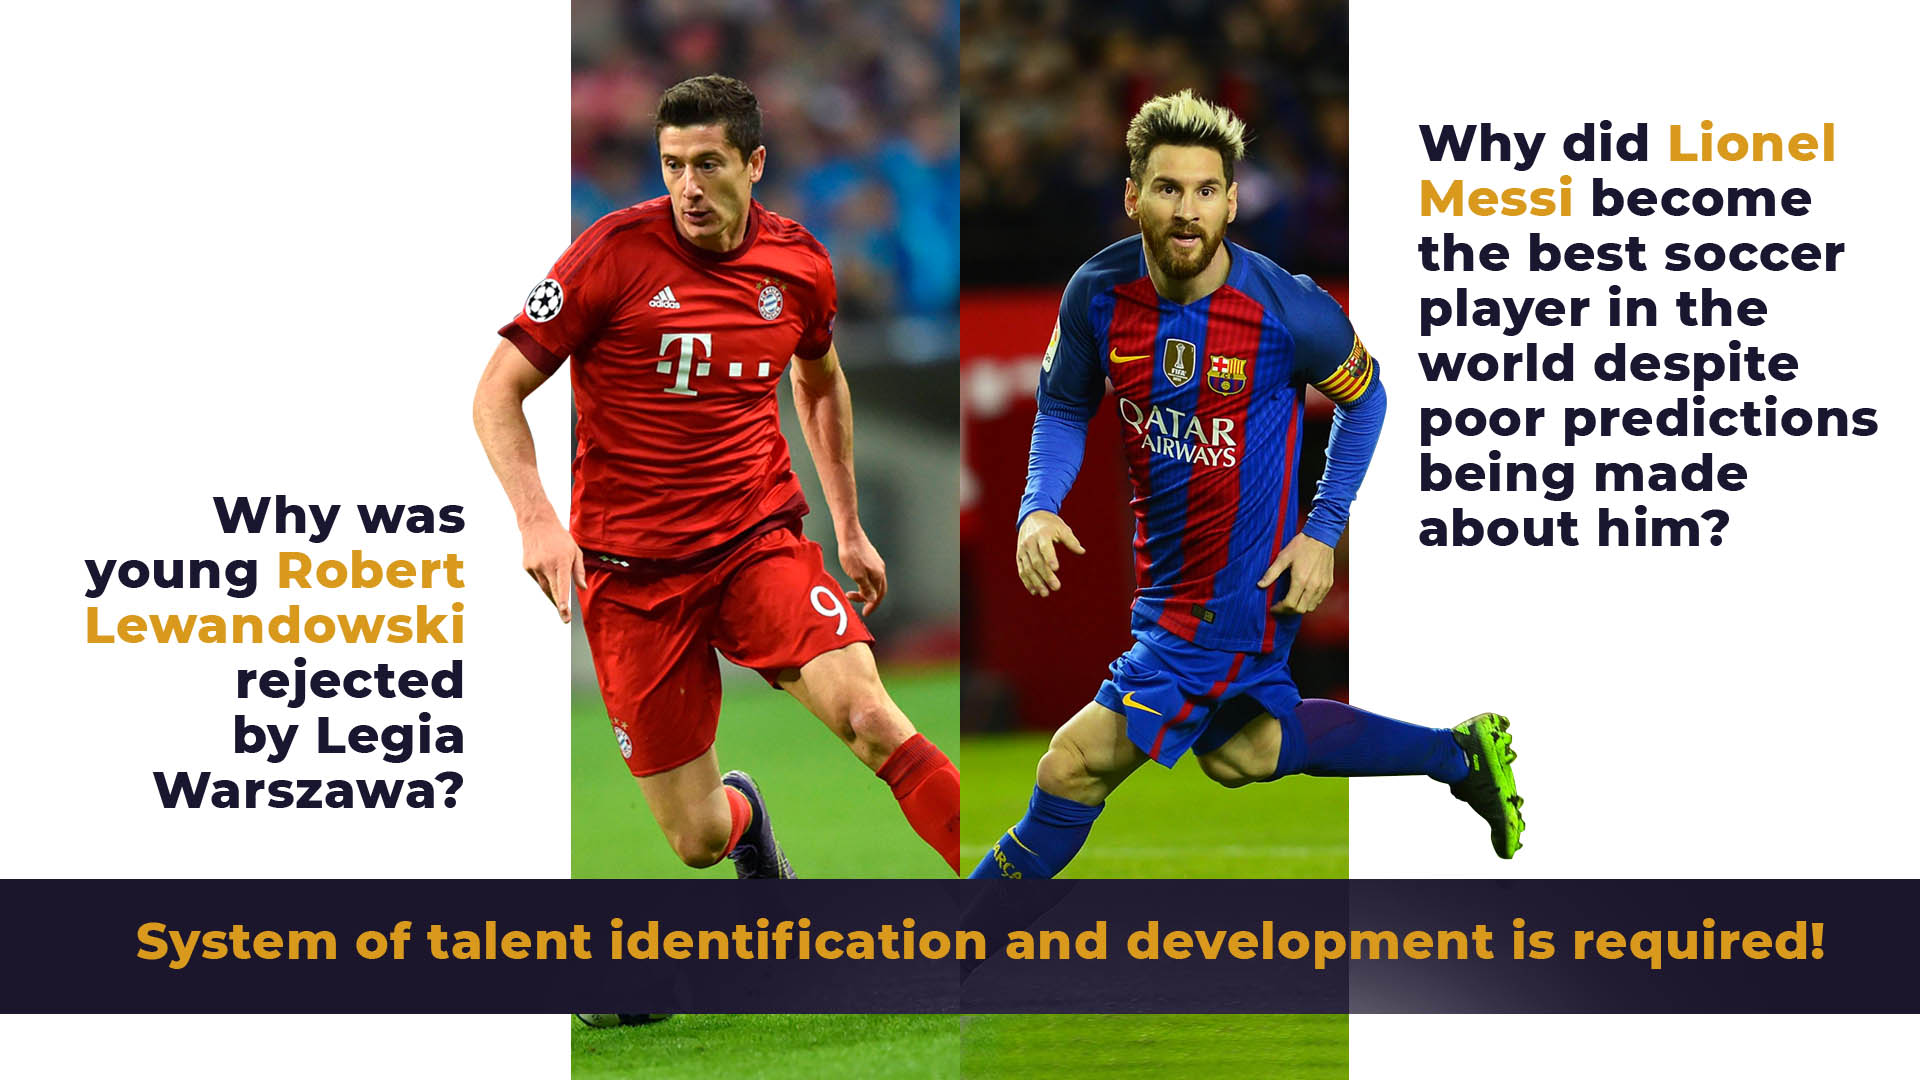 Soccer talent identification